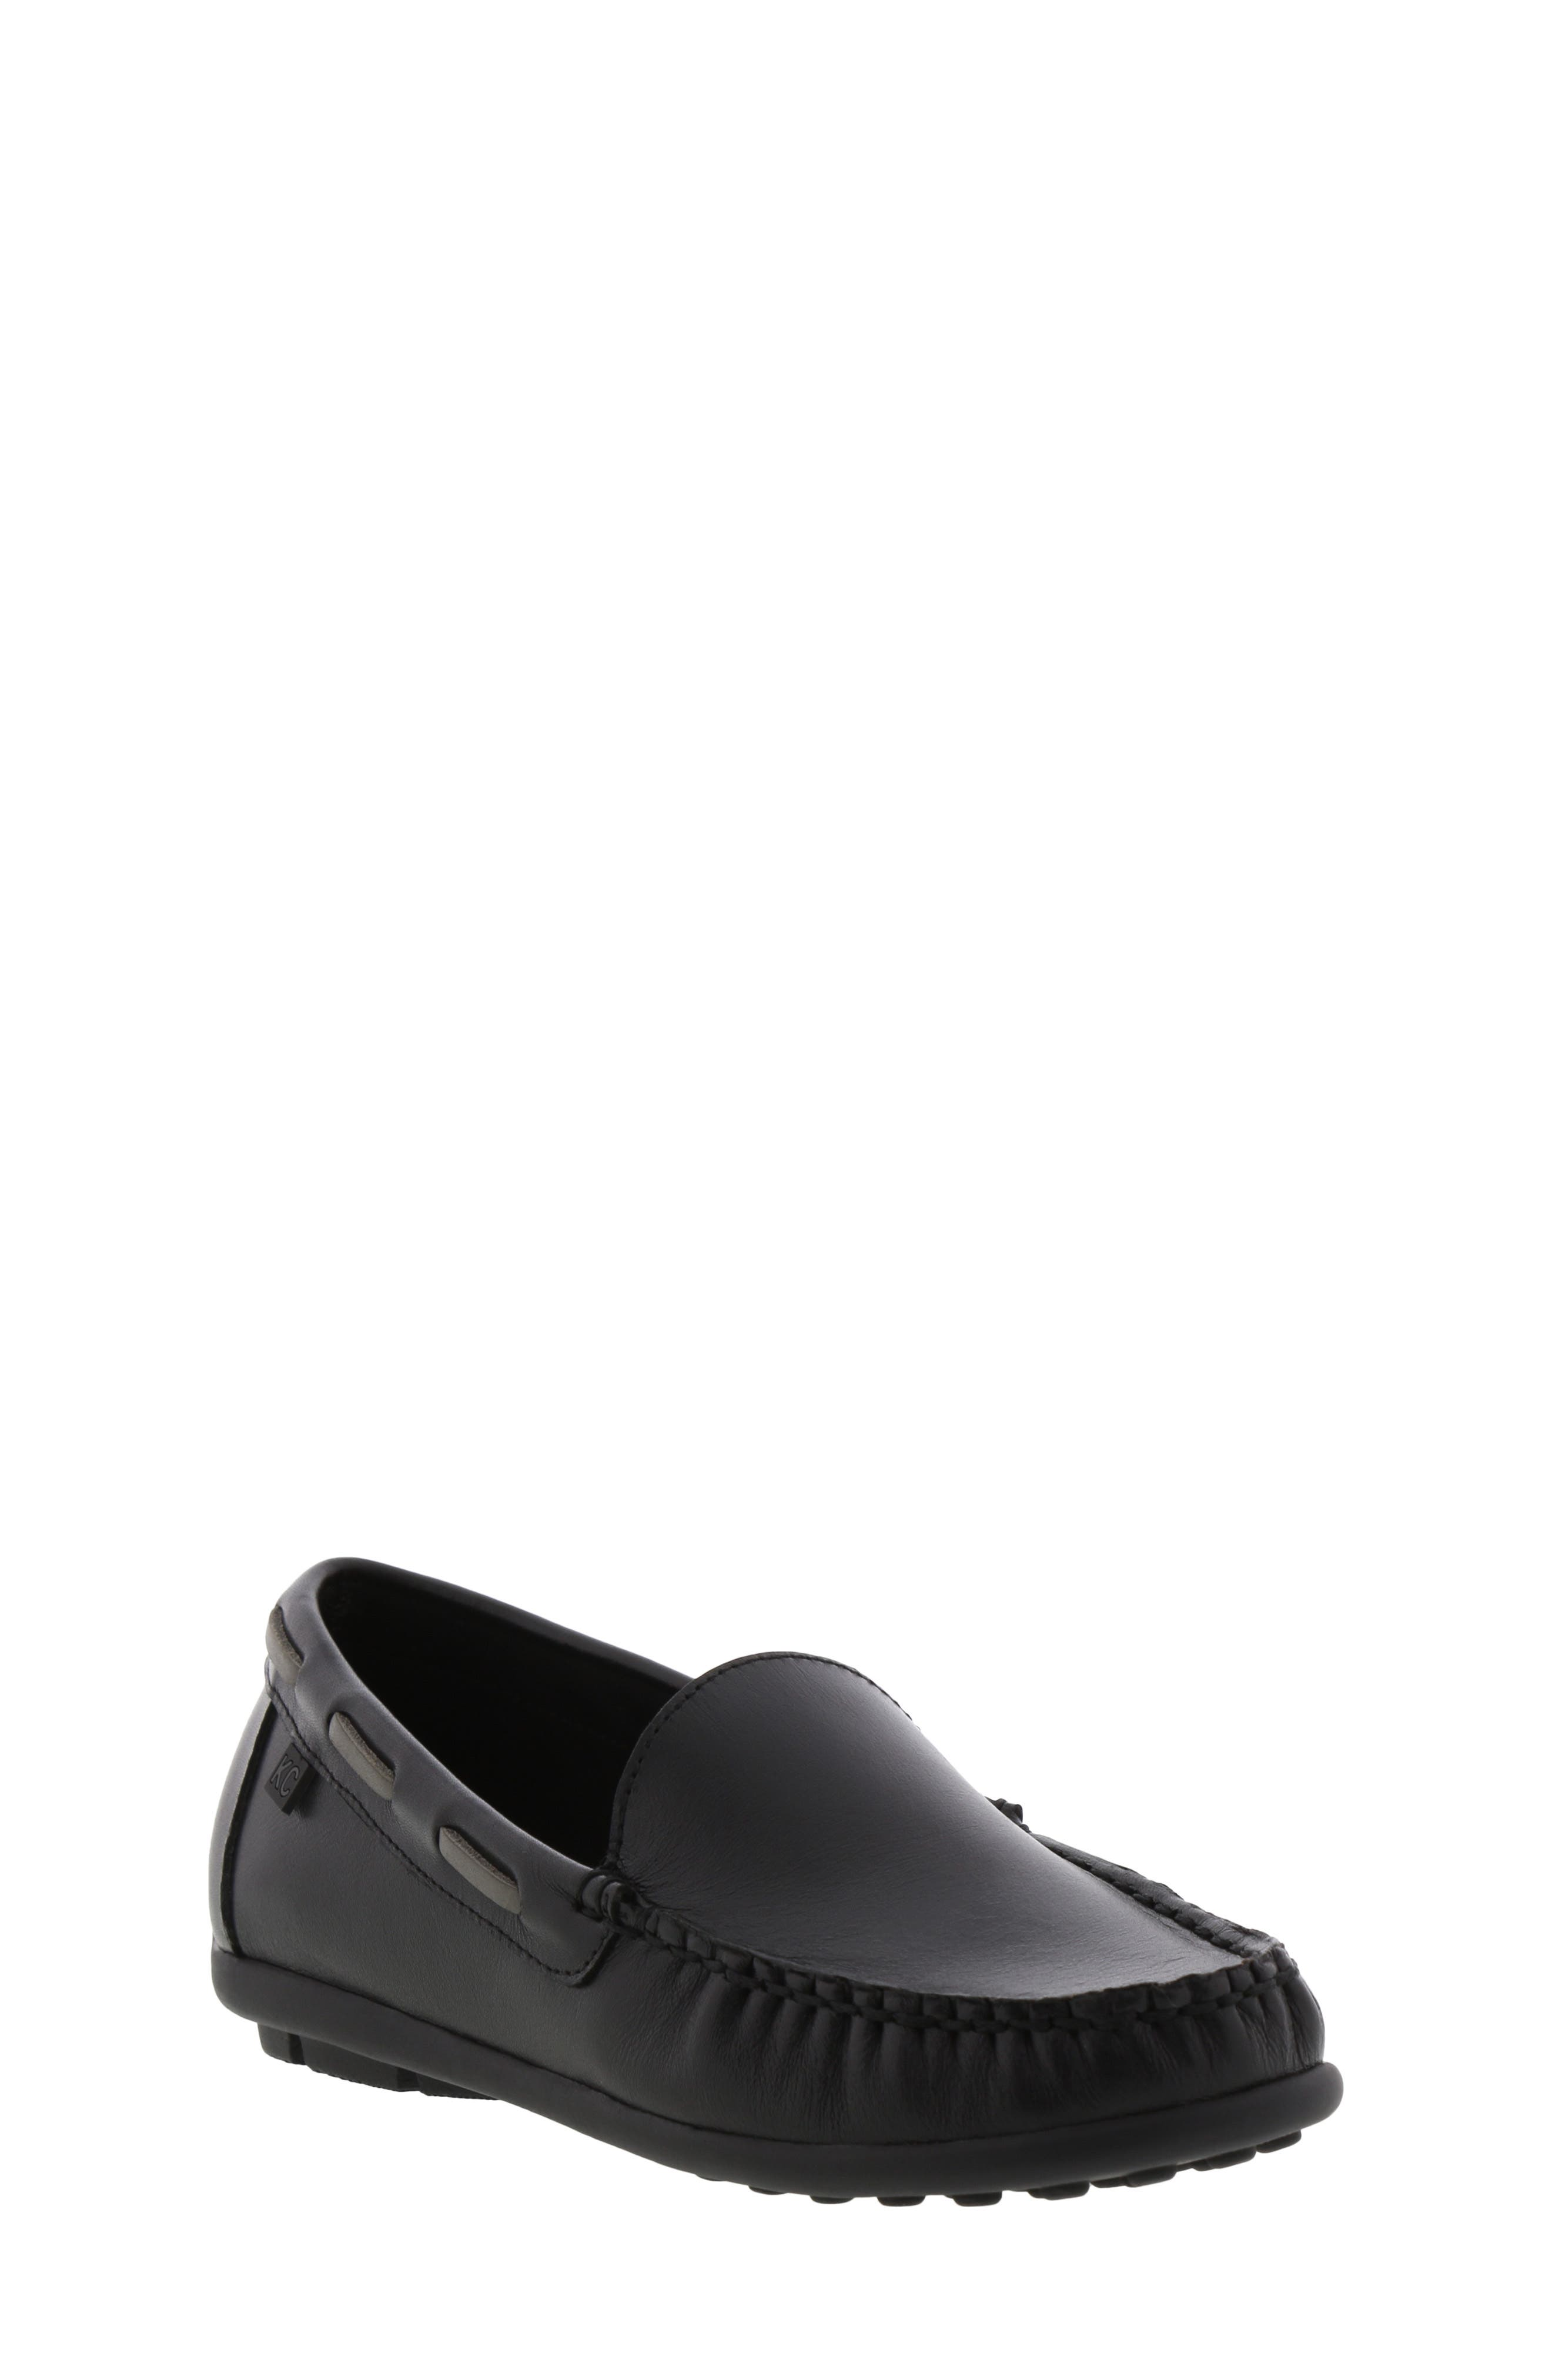 REACTION KENNETH COLE, Helio Shift Driving Moccasin, Main thumbnail 1, color, BLACK SMOOTH